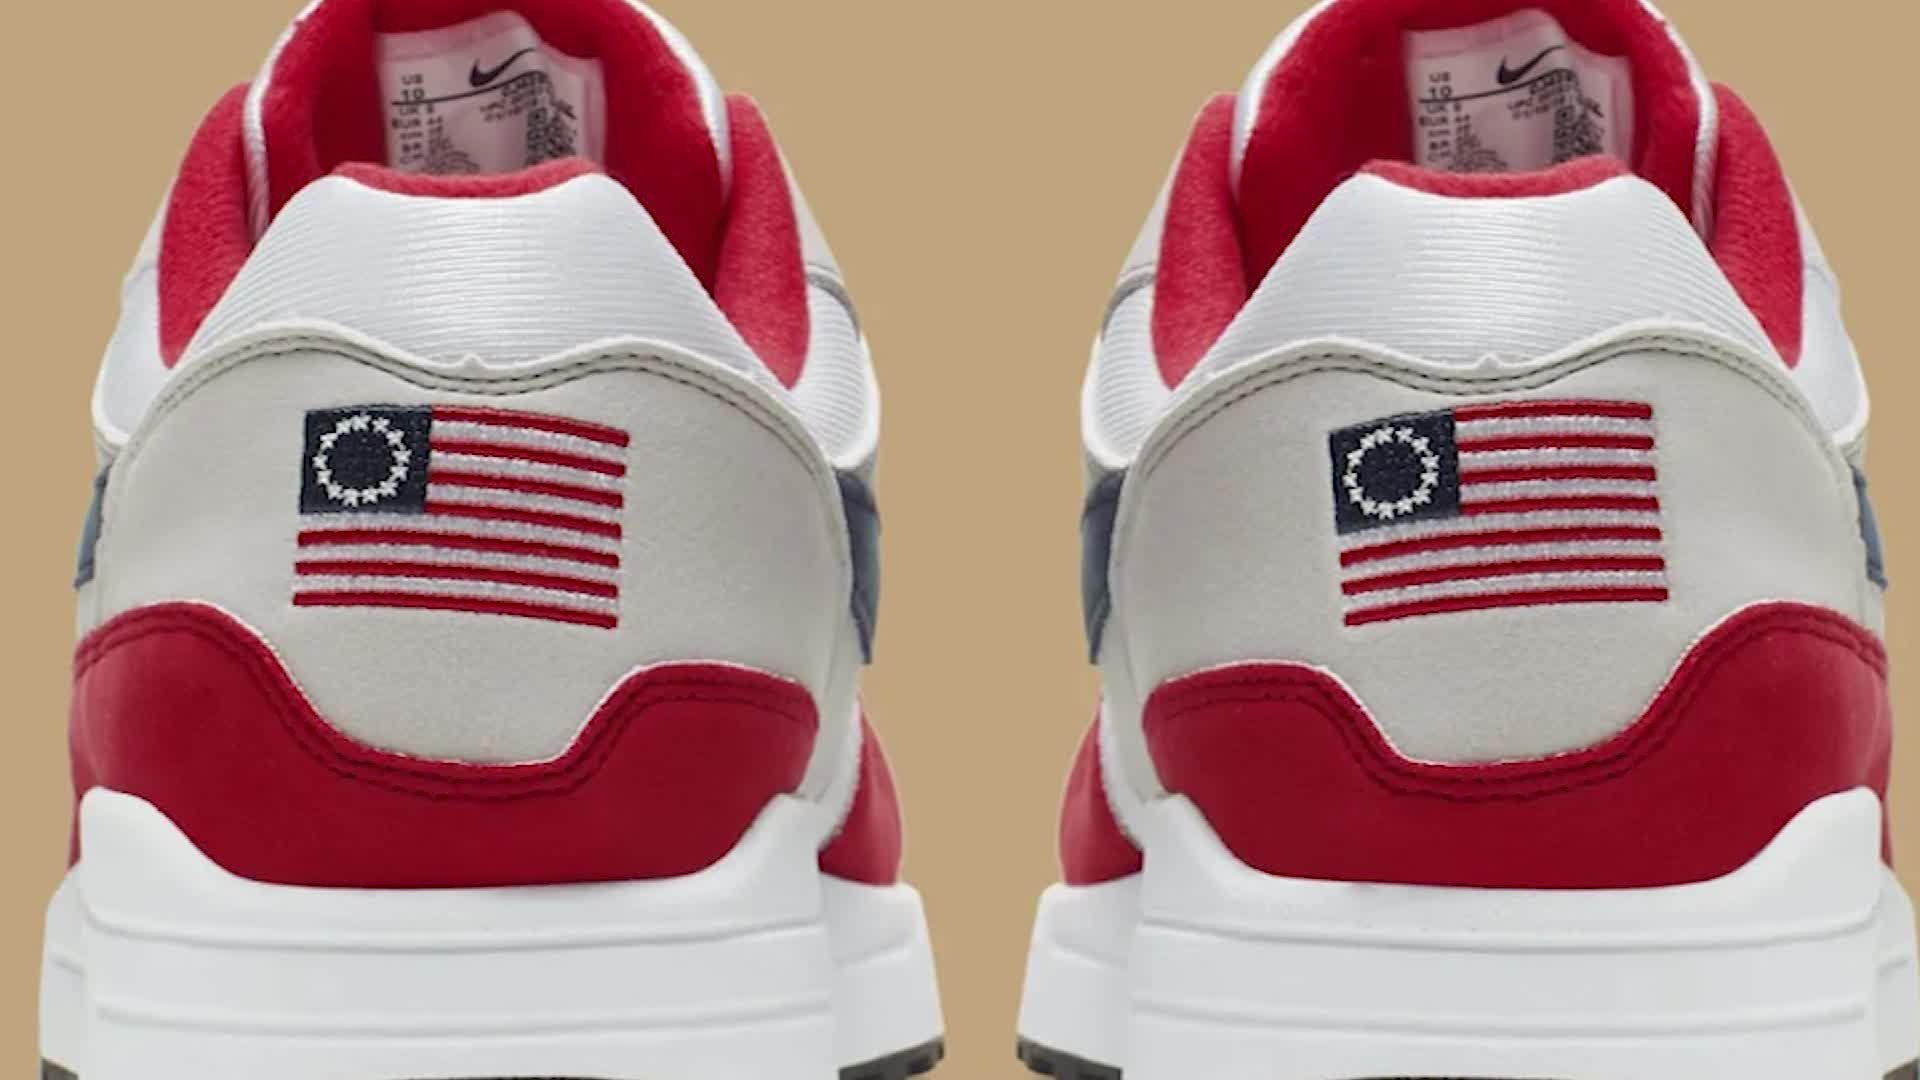 Nike is canceling a sneaker that featured a version of the American flag from the late 18th century. (Credit: Nike)